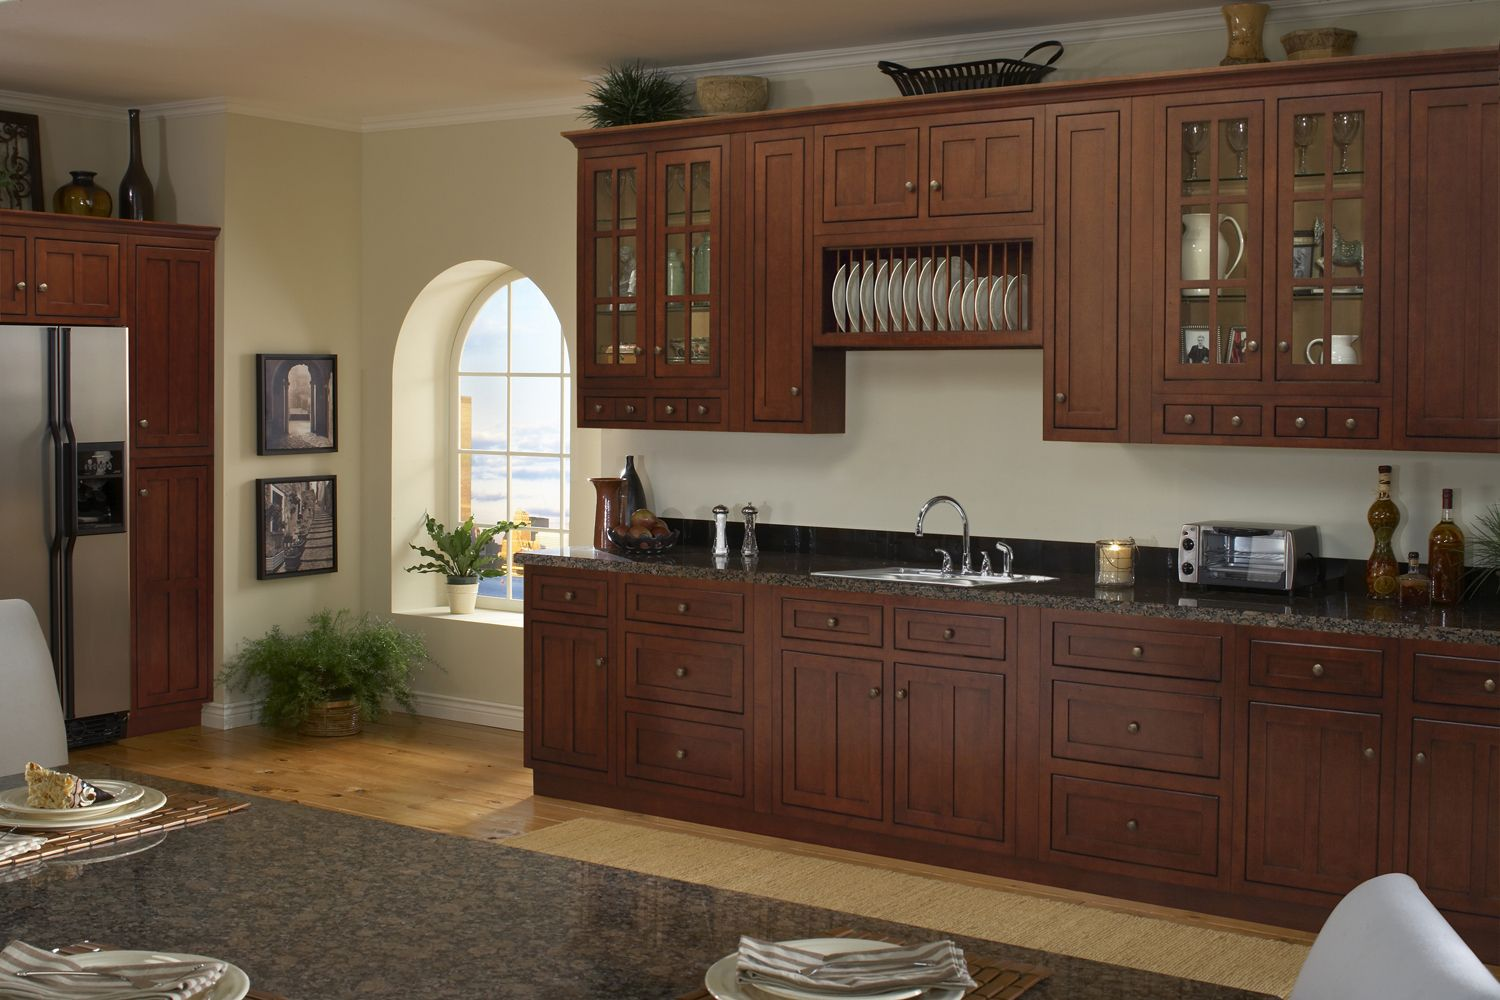 The Grand Haven Kitchen Collection From Sunnywood See More At Www Sunnywood Biz Kitchen Cabinets Cover Rona Kitchen Cabinets Kitchen Cabinets